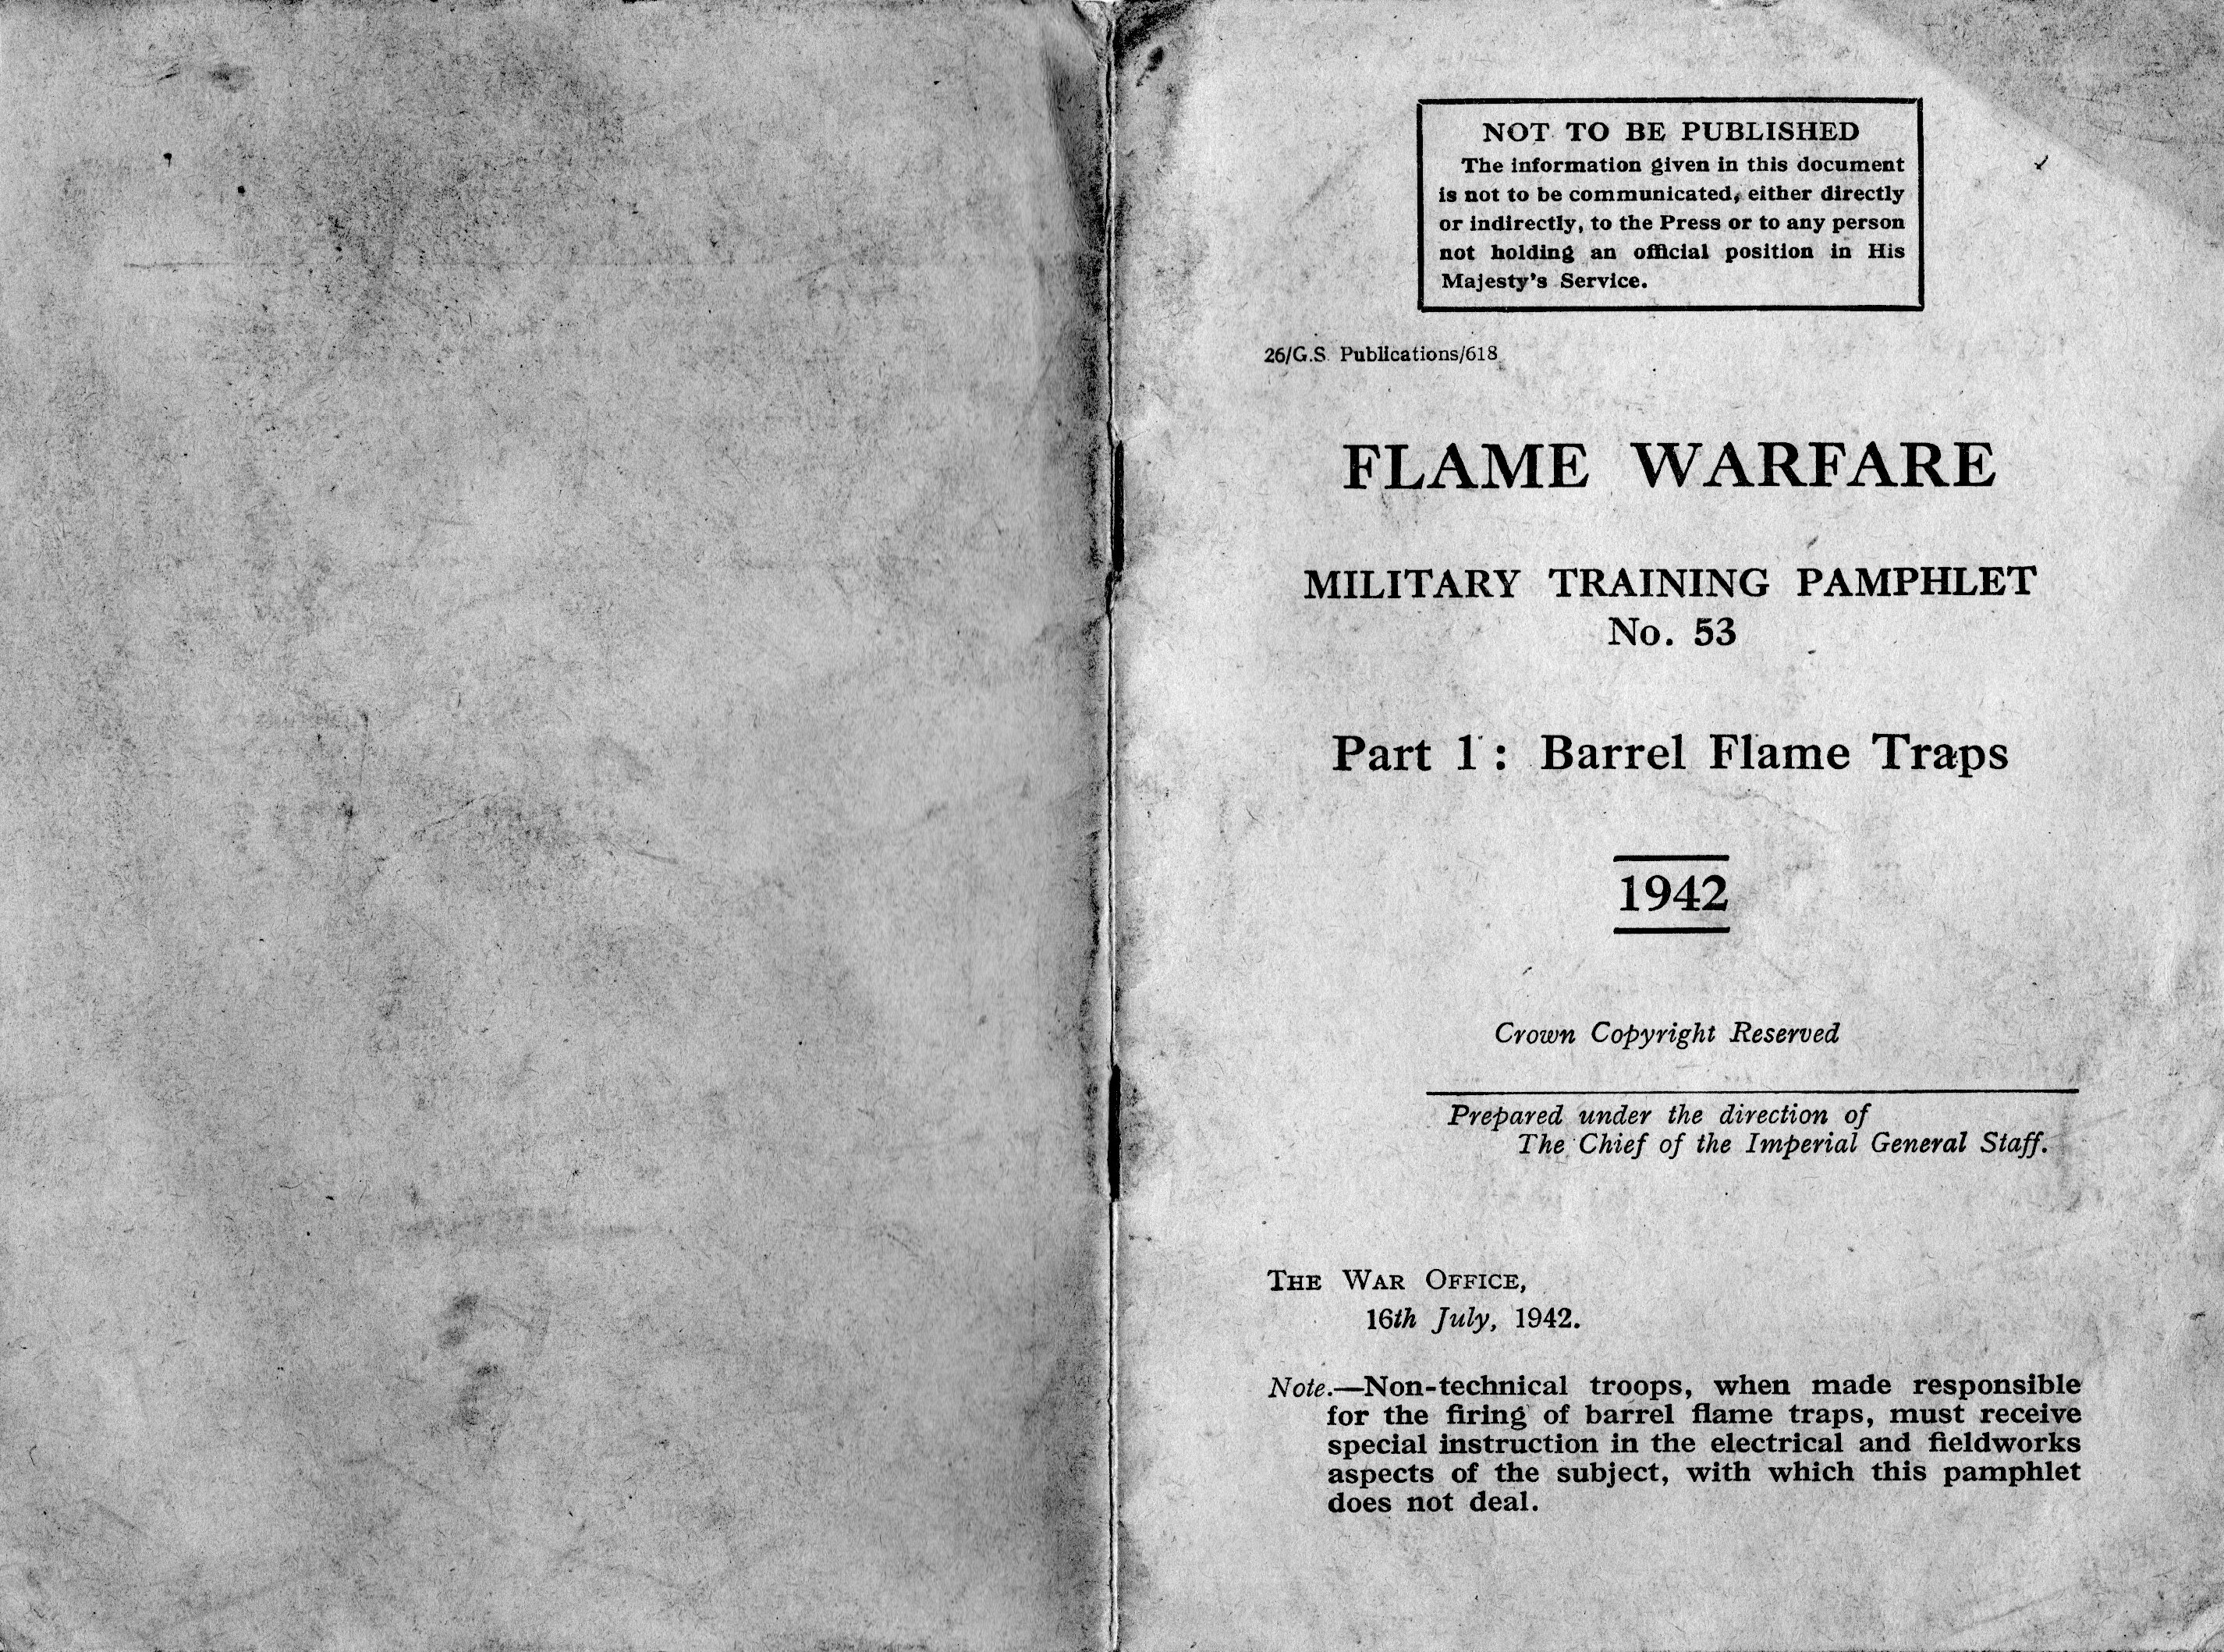 Flame Warfare Pamphlet